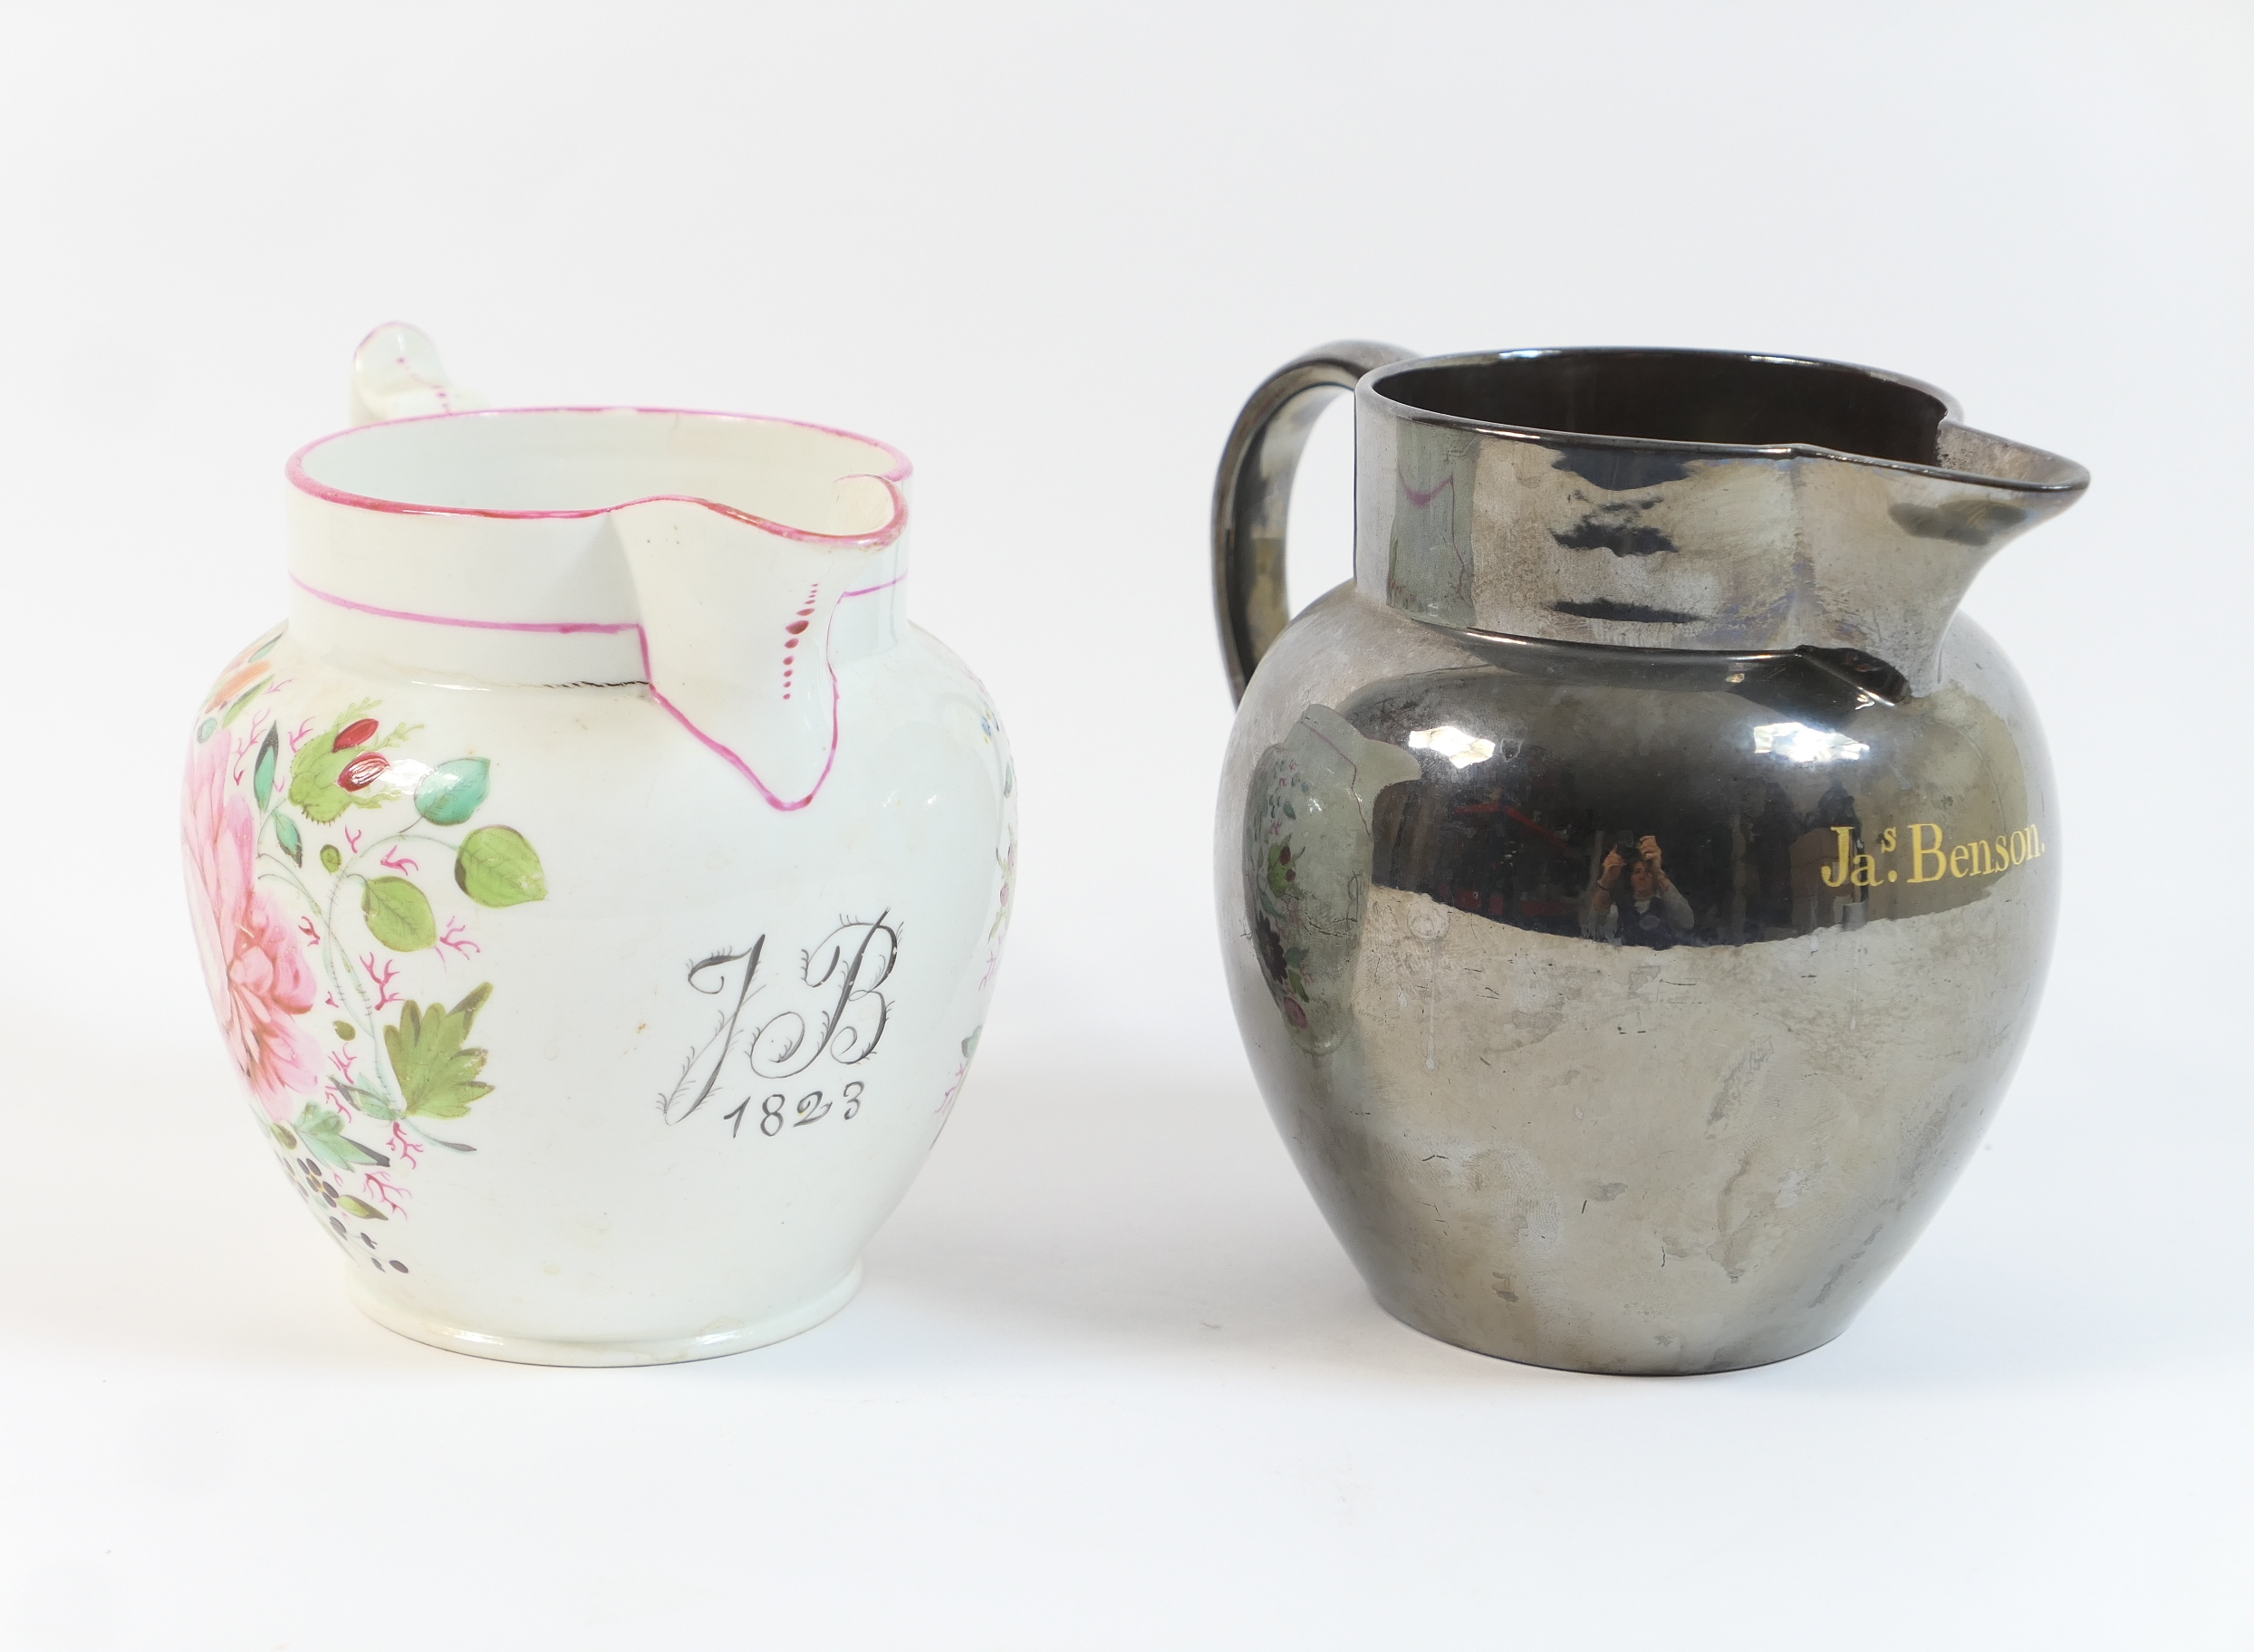 Staffordshire dated milk jug, circa 1823, decorated with floral sprays in bold colours, against a - Image 2 of 2